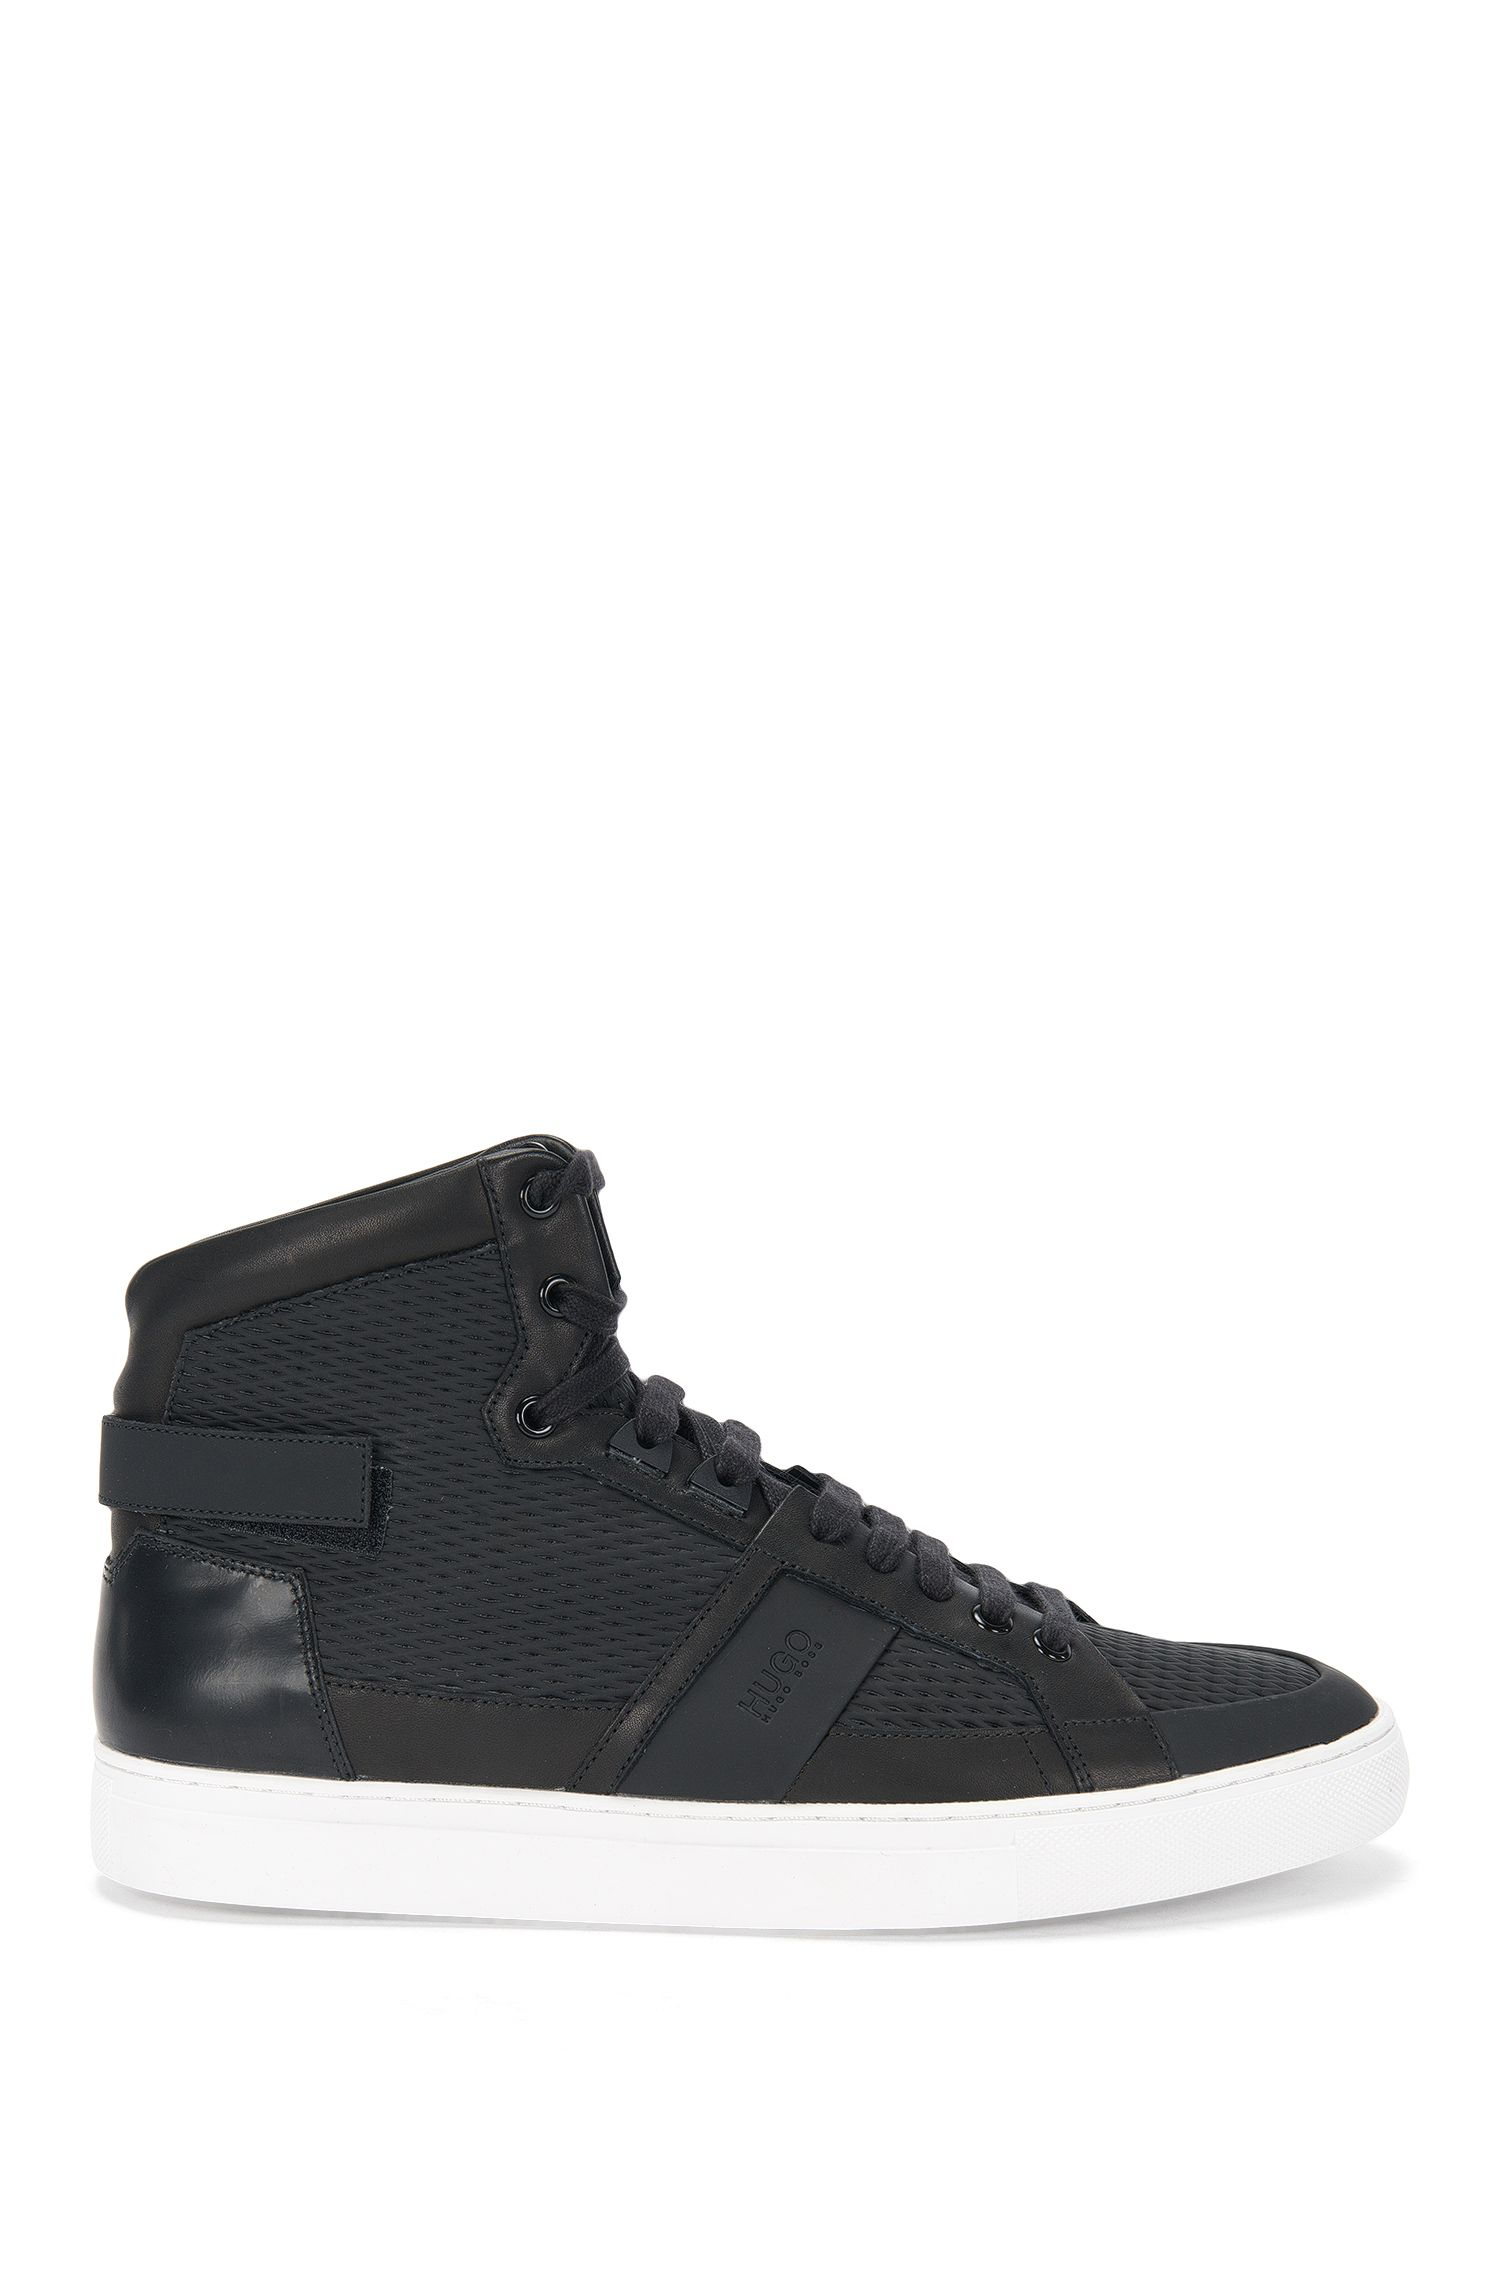 High-top leather trainers with perforated inserts: 'Futurism_Hito_ltrb'